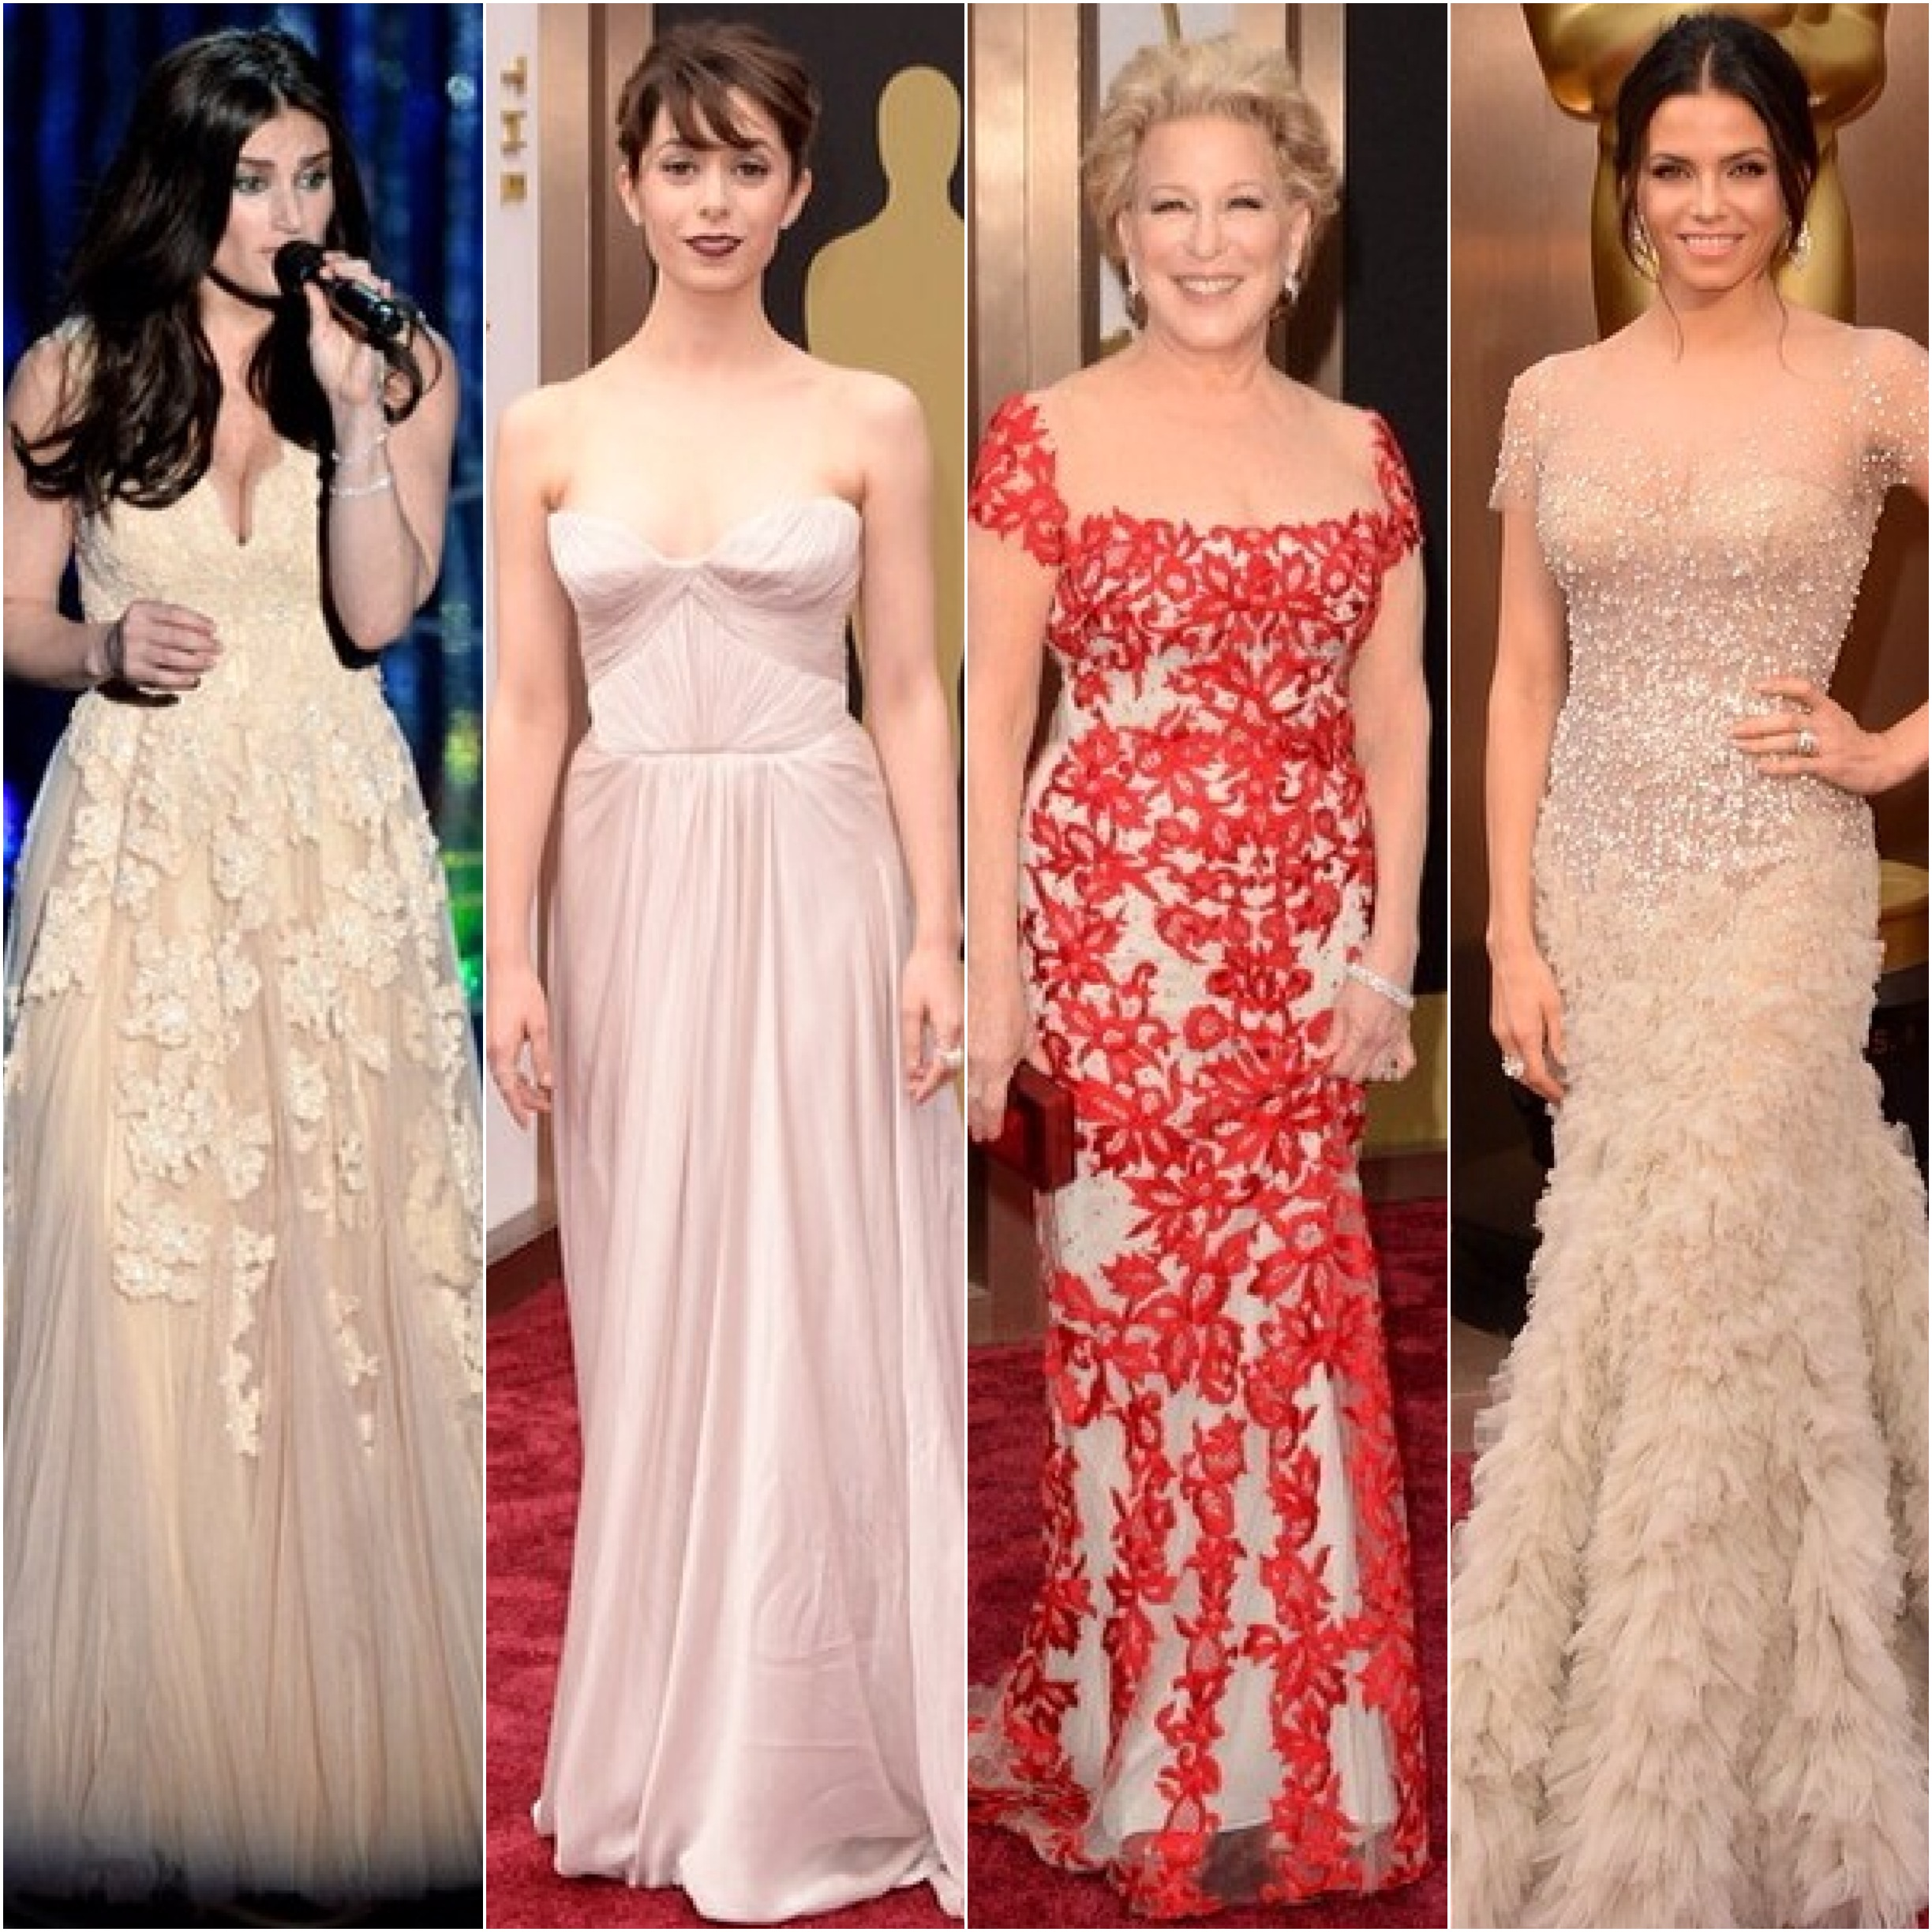 All in Reem Acra: Idina Menzel (performing at the Oscars), Christin Milioti, Bette Midler, and Jenna Dewan Tatum